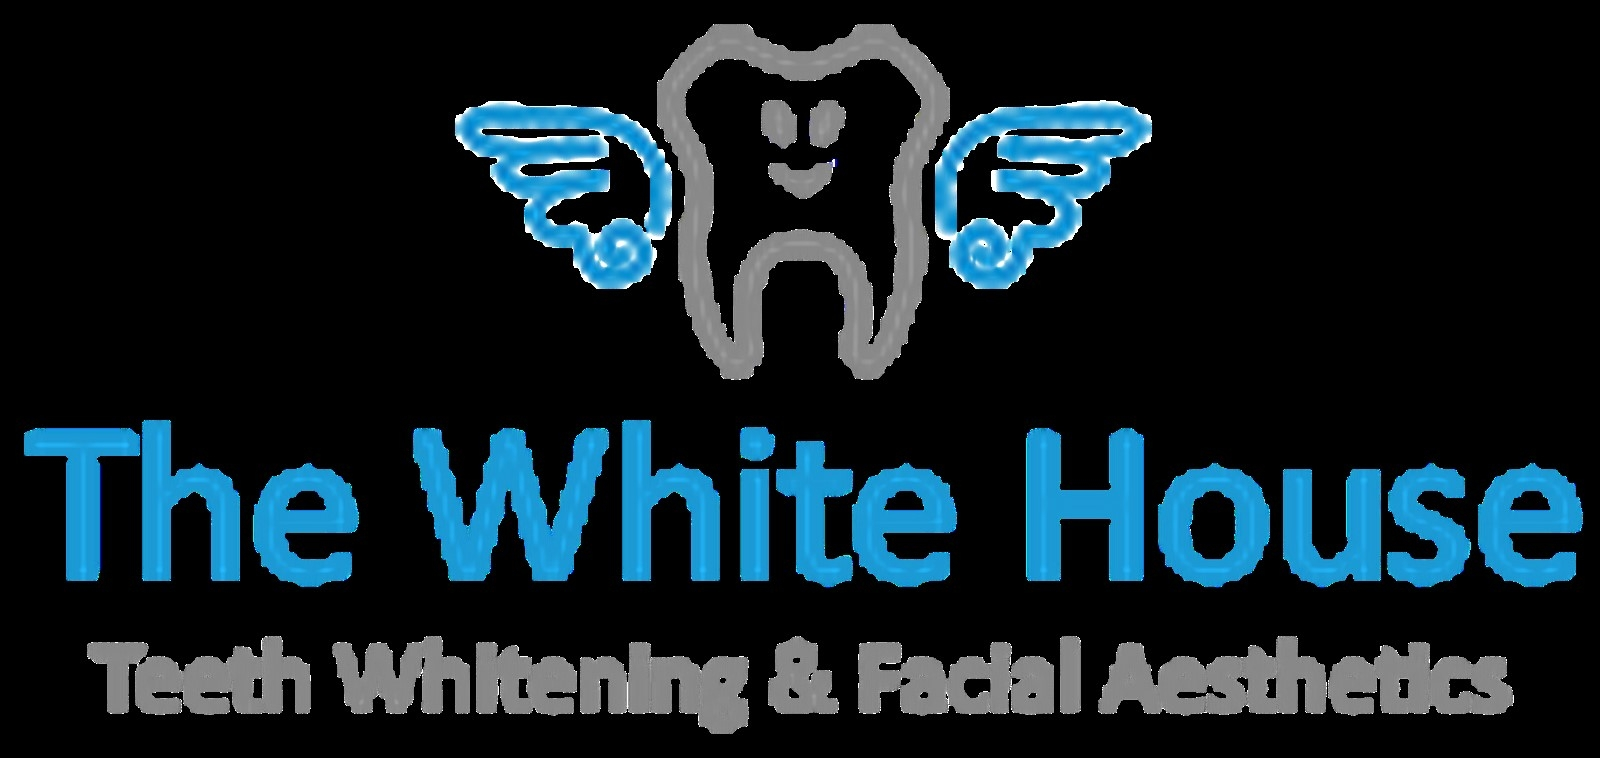 Whitehouse Teeth Whitening UK (@teethwhitening1) Cover Image